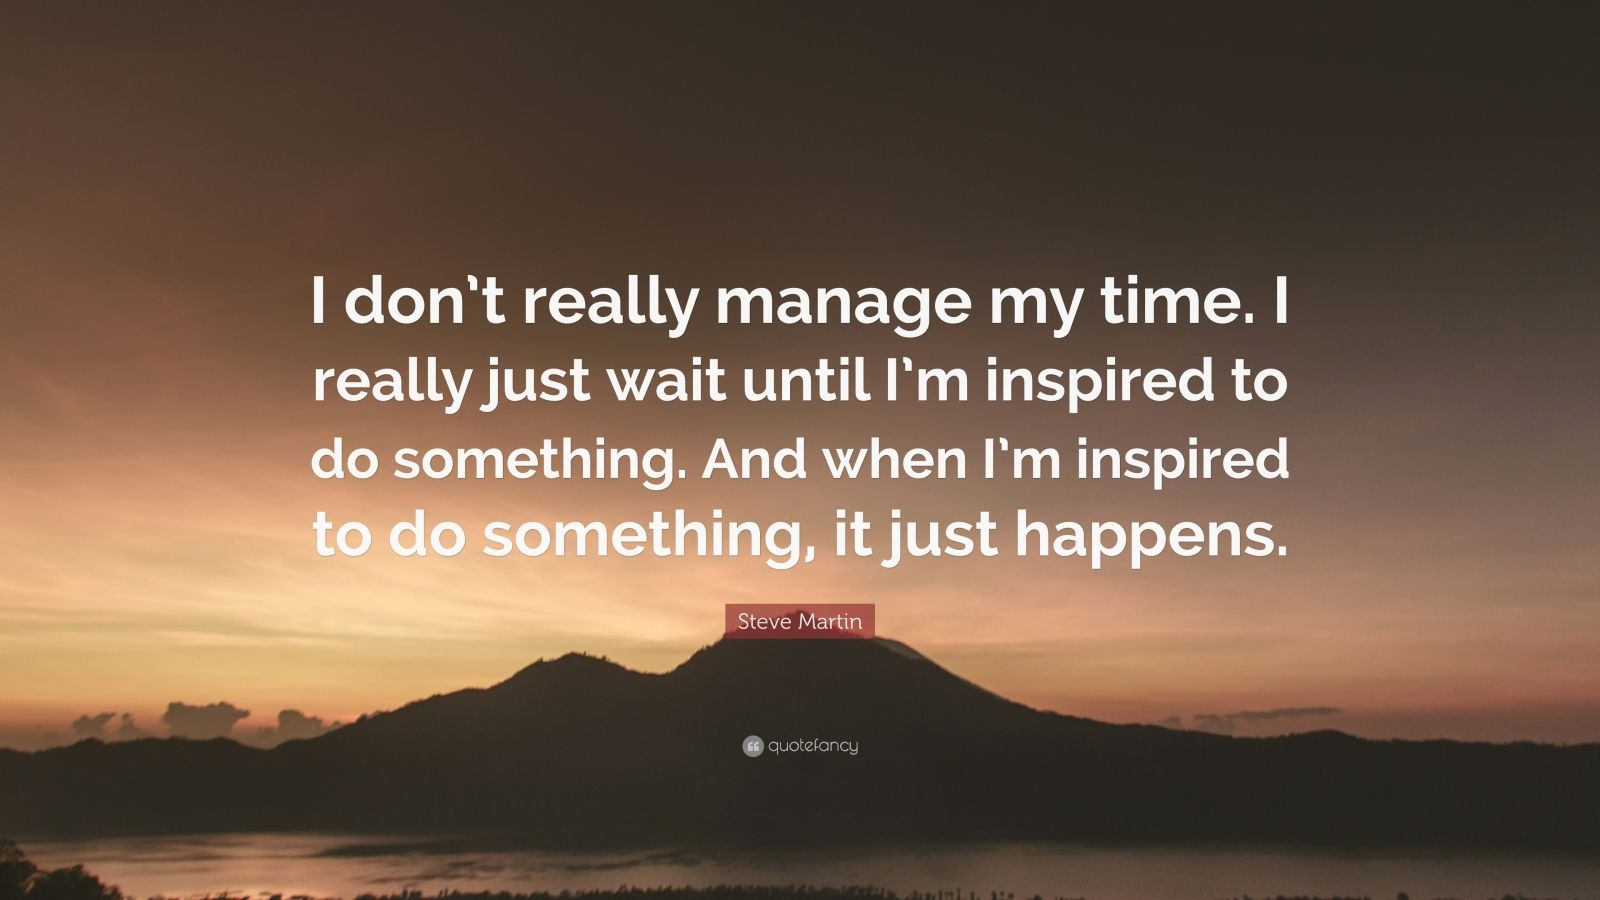 """Steve Martin Quote: """"I don't really manage my time. I really just wait until I'm inspired to do something. And when I'm inspired to do something, it just happens."""""""